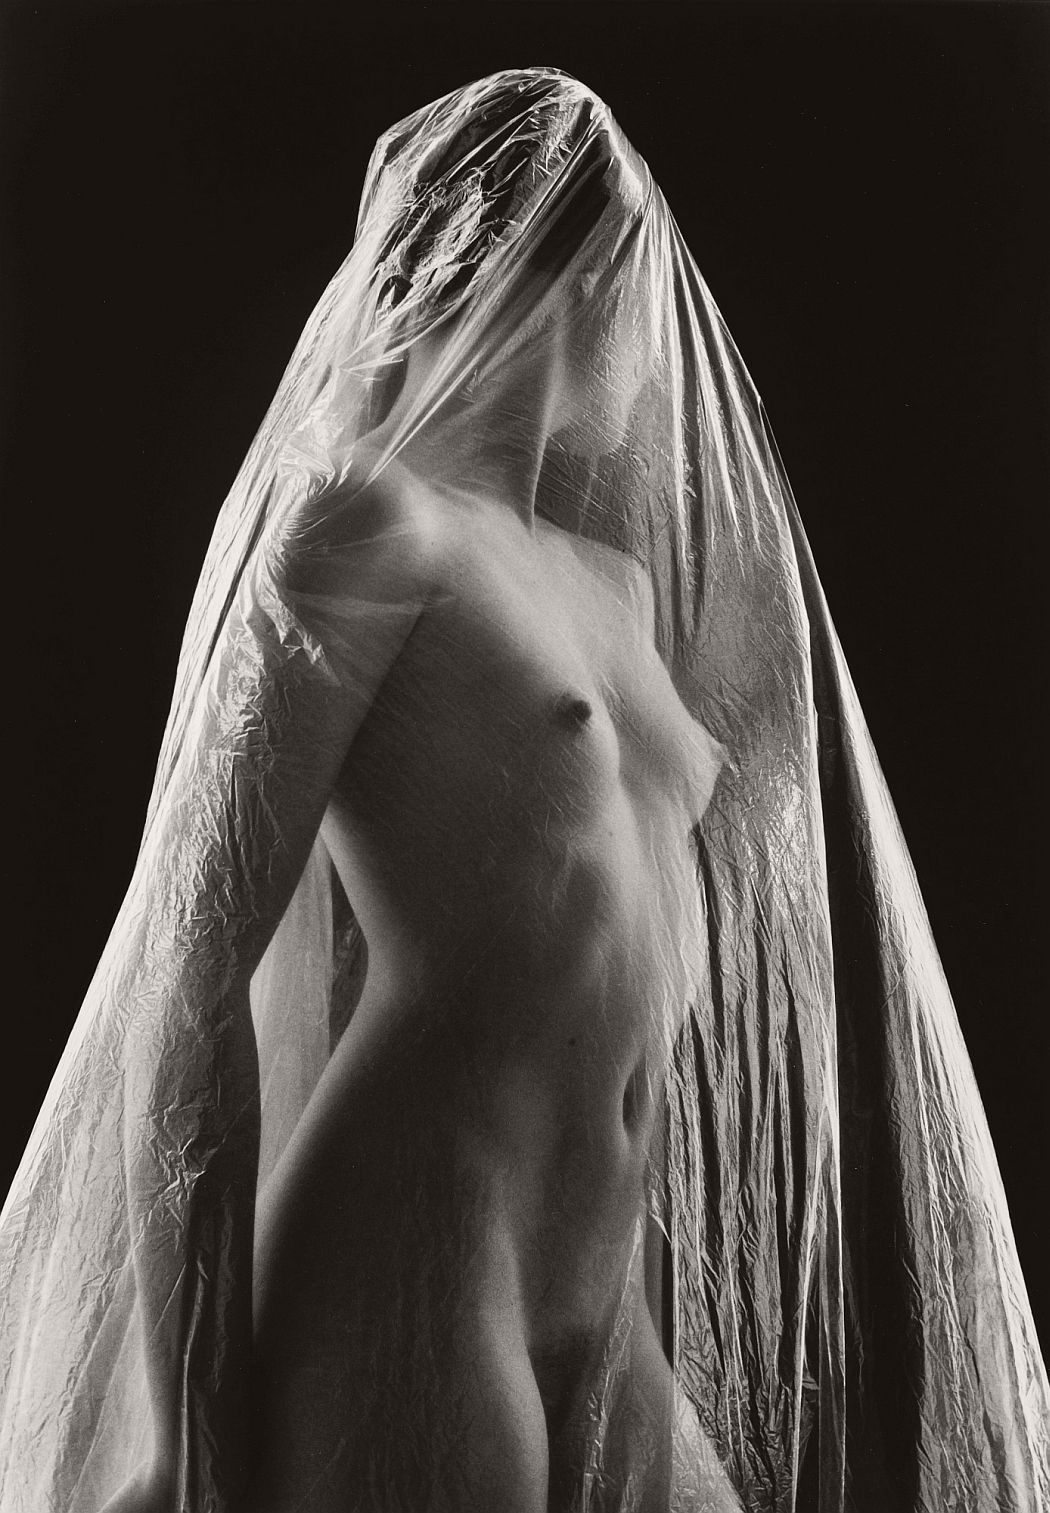 nude-photographer-ruth-bernhard-07